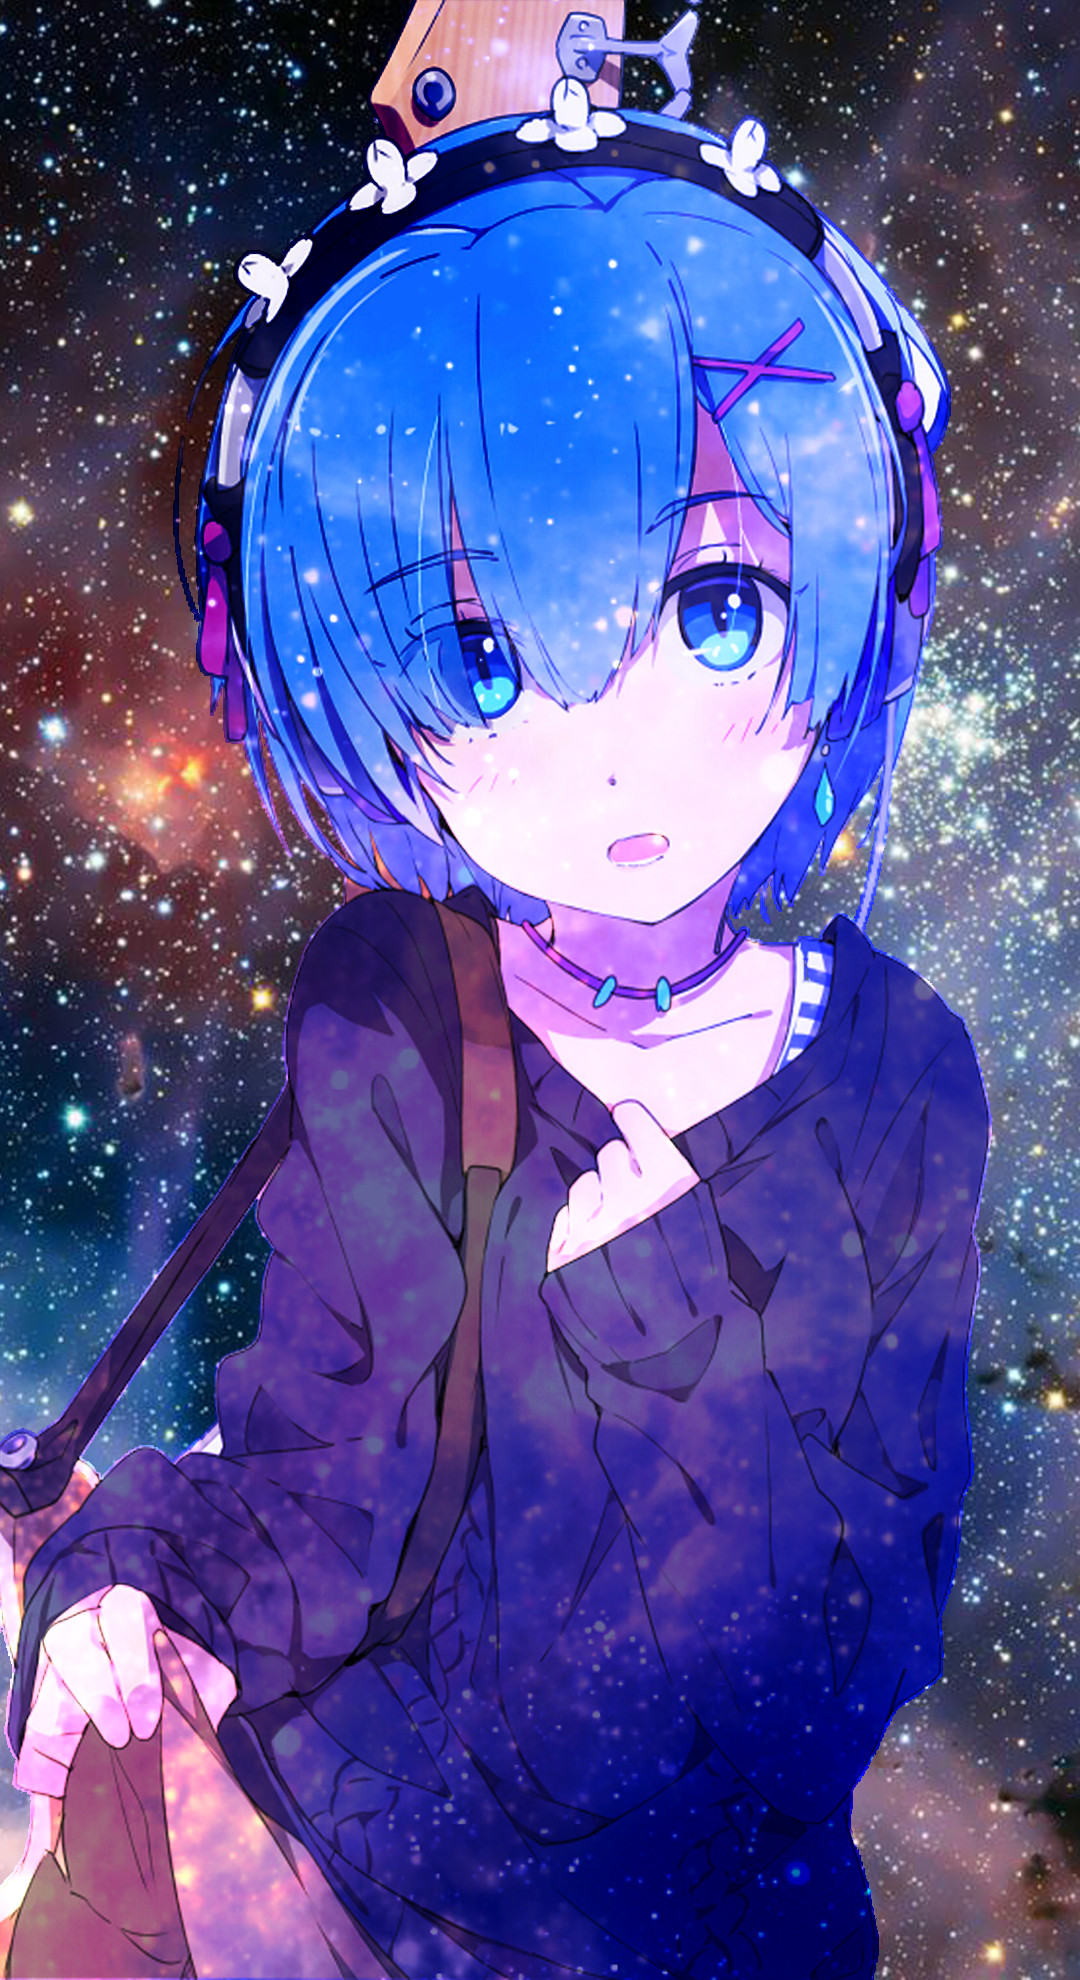 Anime Wallpaper for Phone 69+ images